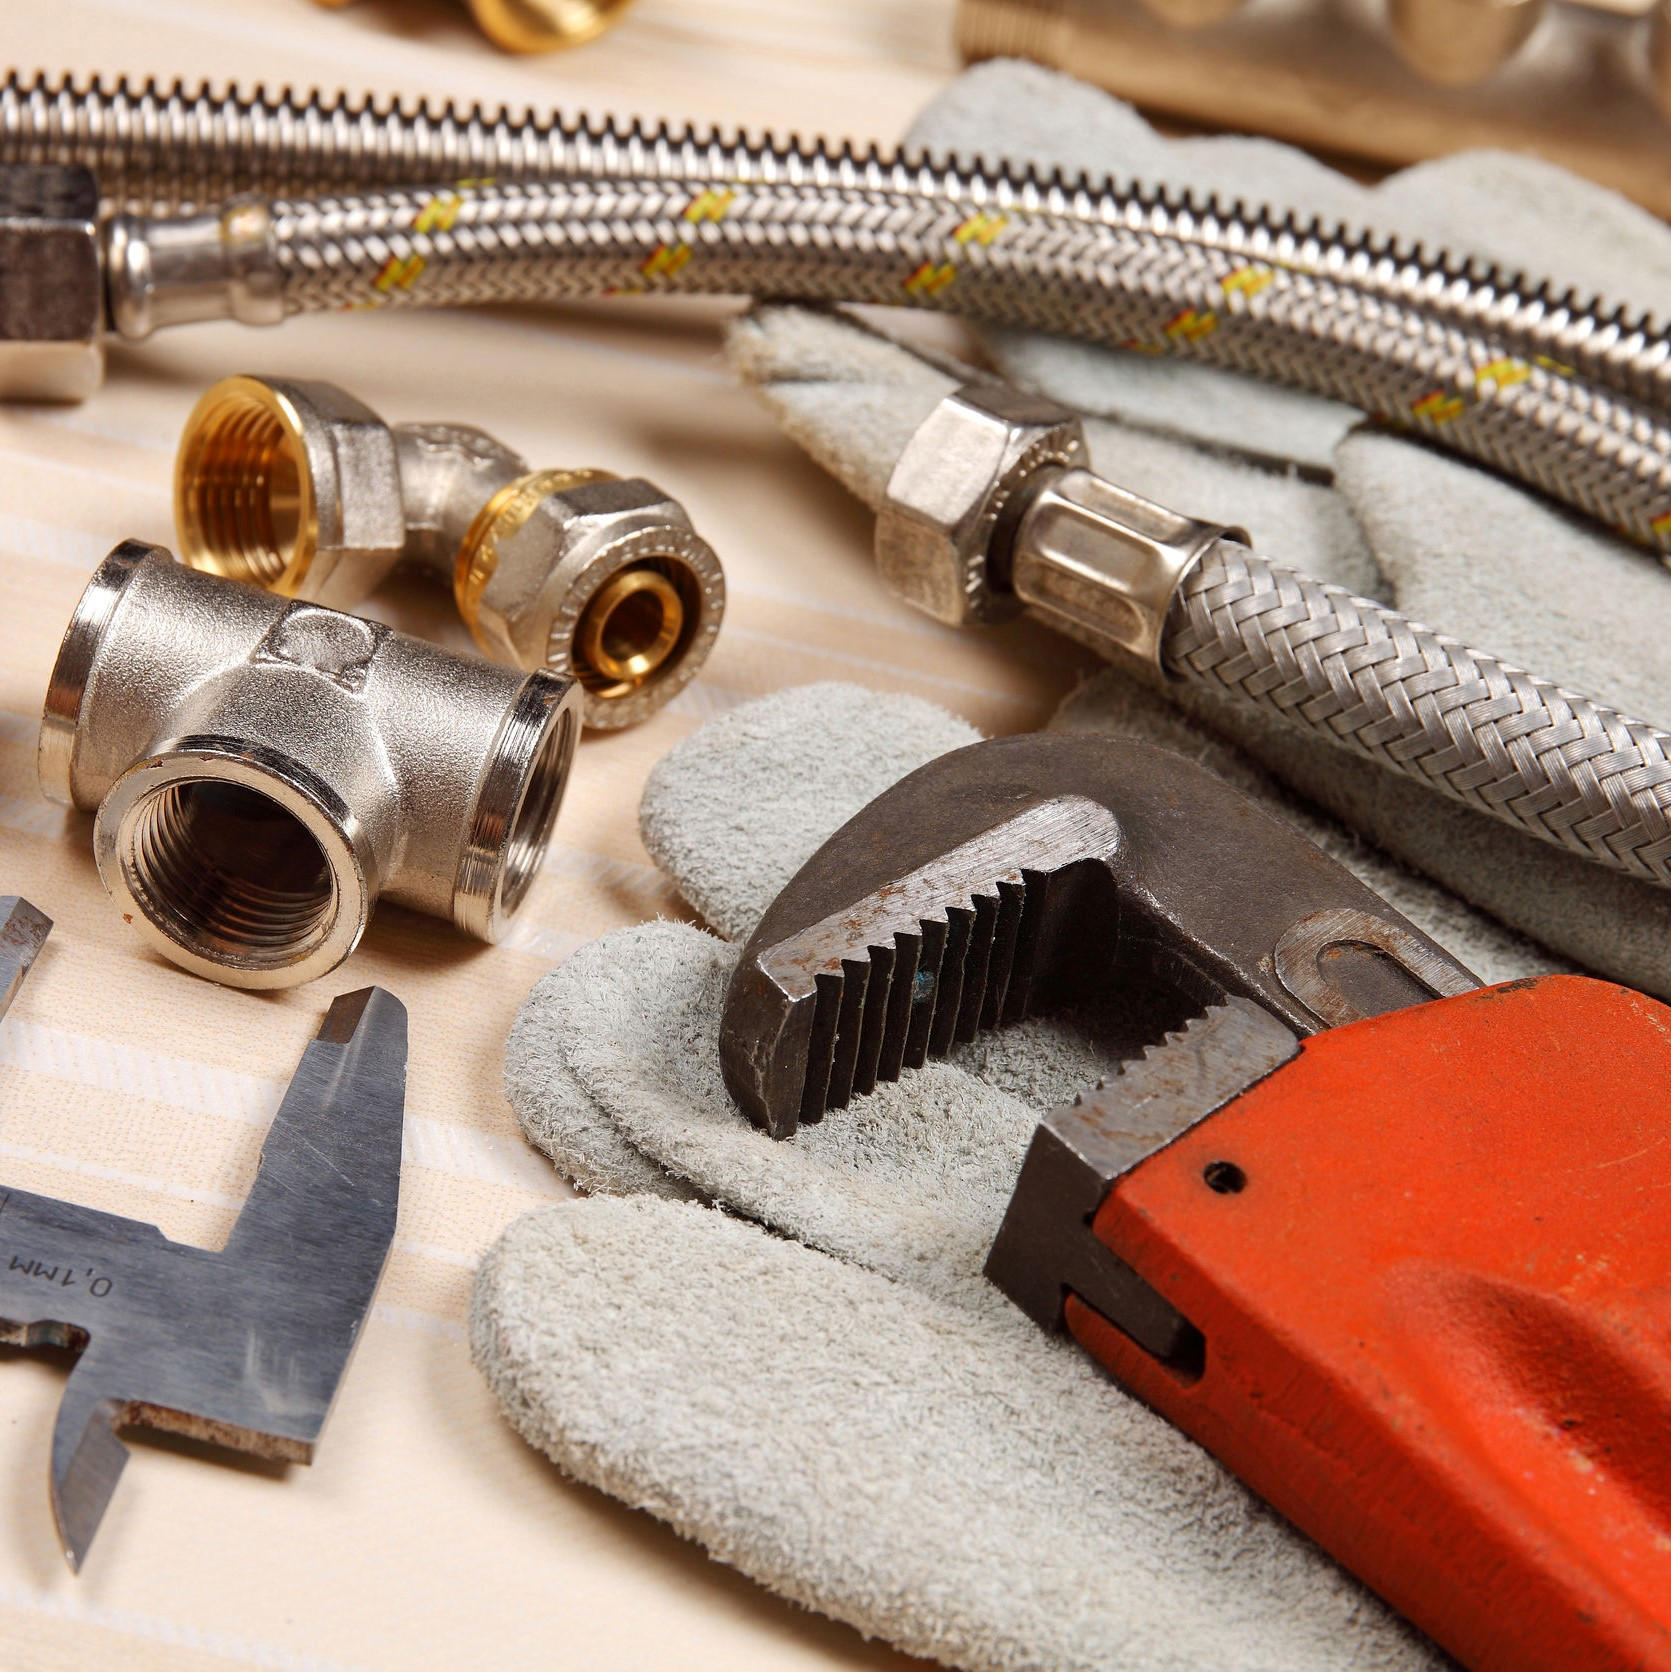 A close up of tools and pipes that are used in plumbing.